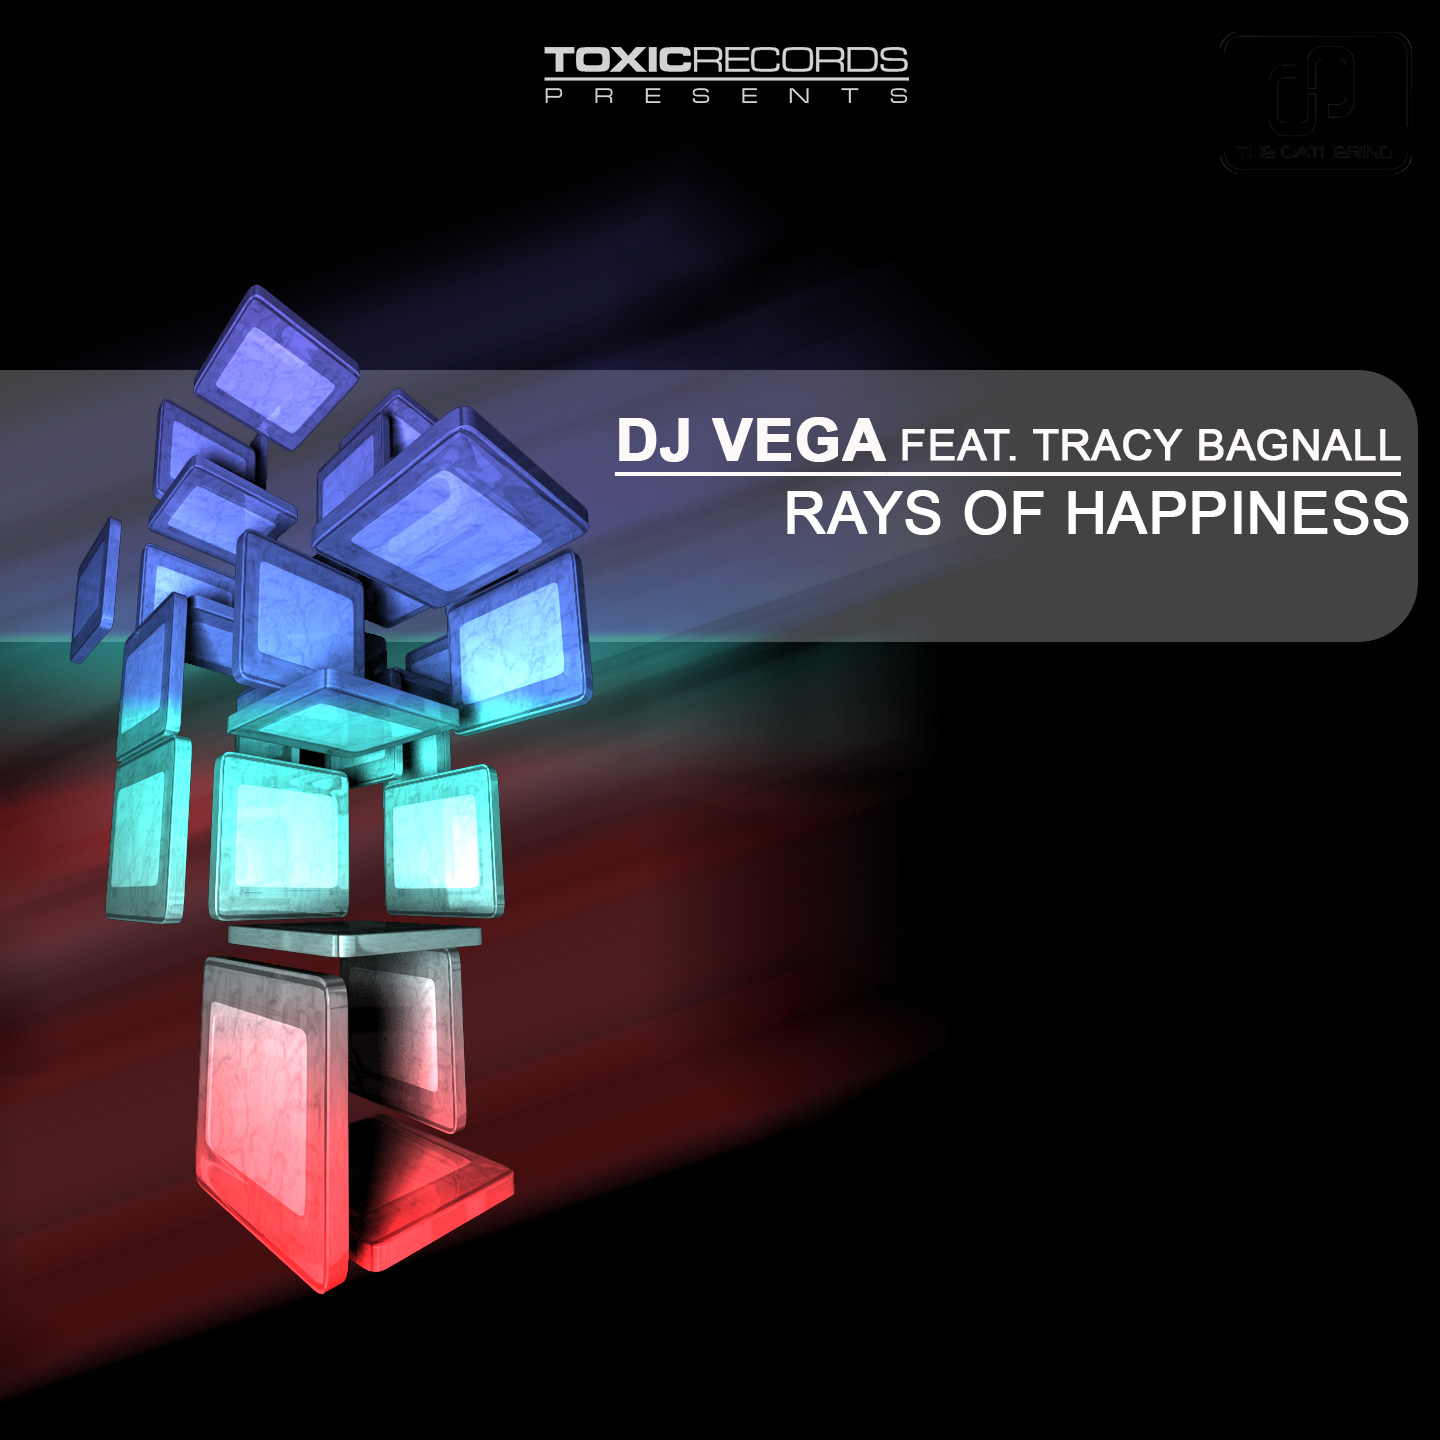 DJ Vega ft Tracy Bagnall – Rays of Happiness (Toxic Records)